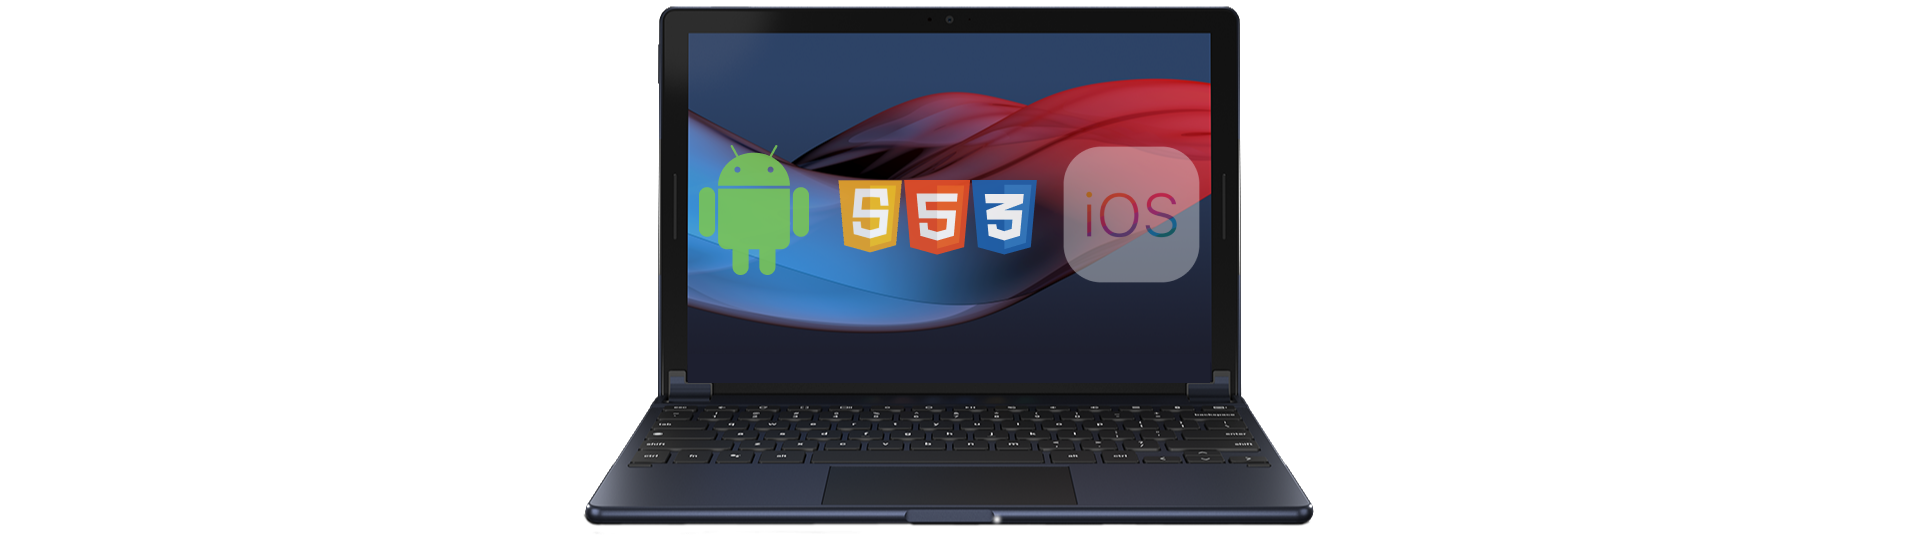 /pixel-slate-is-almost-great-for-developers-c5339c4b6bc feature image